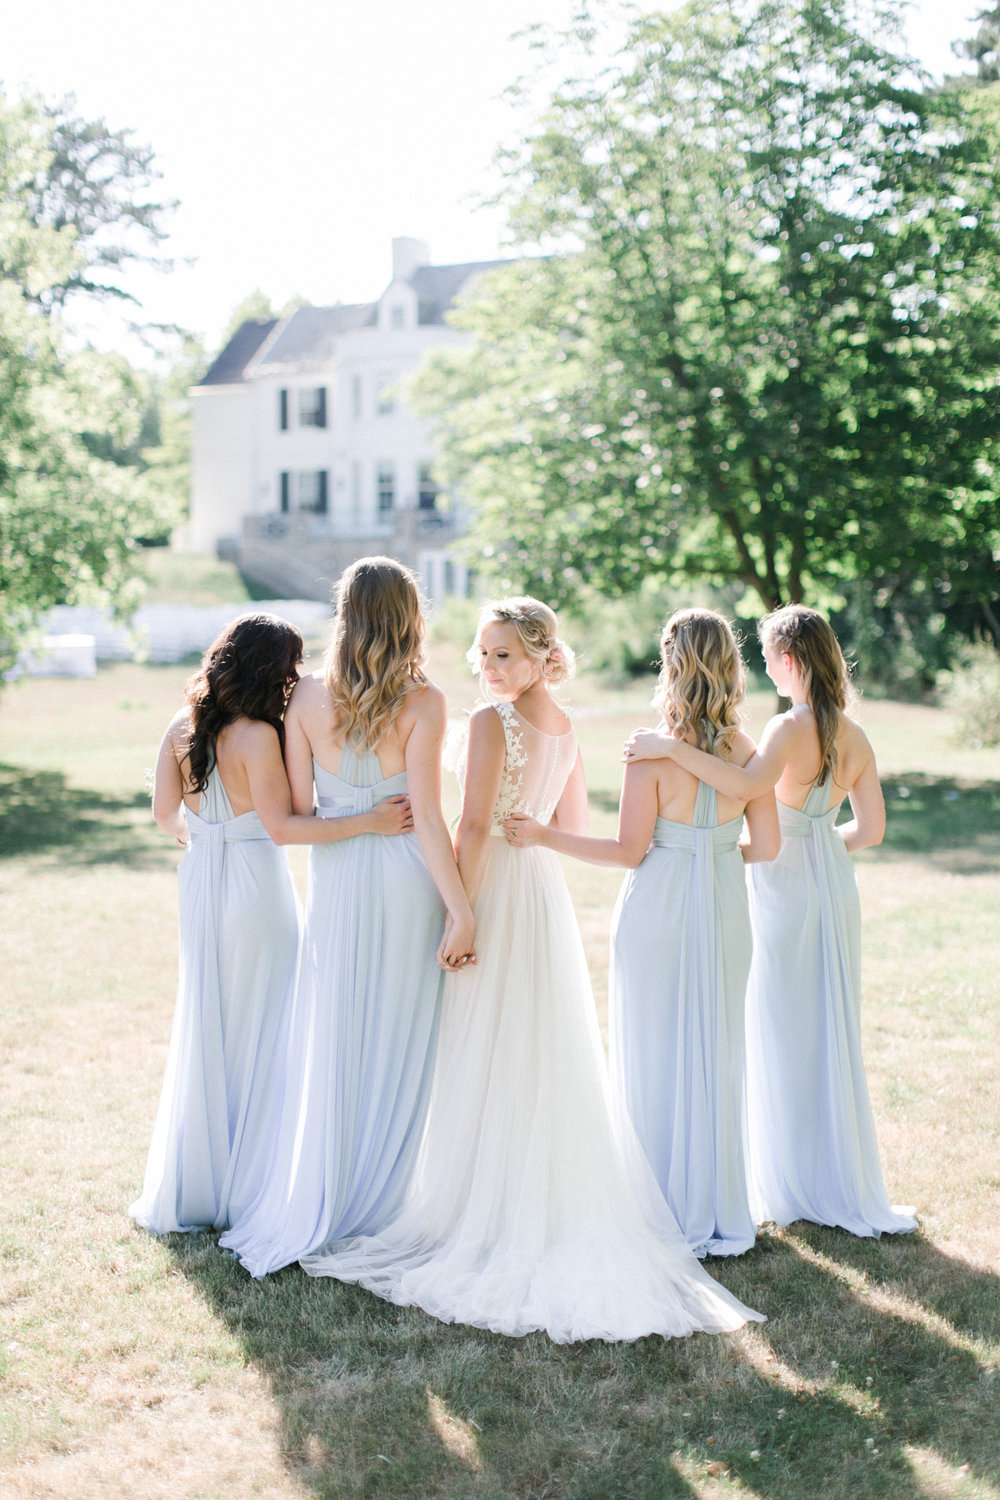 meghan-dustin-bridesmaids.jpg